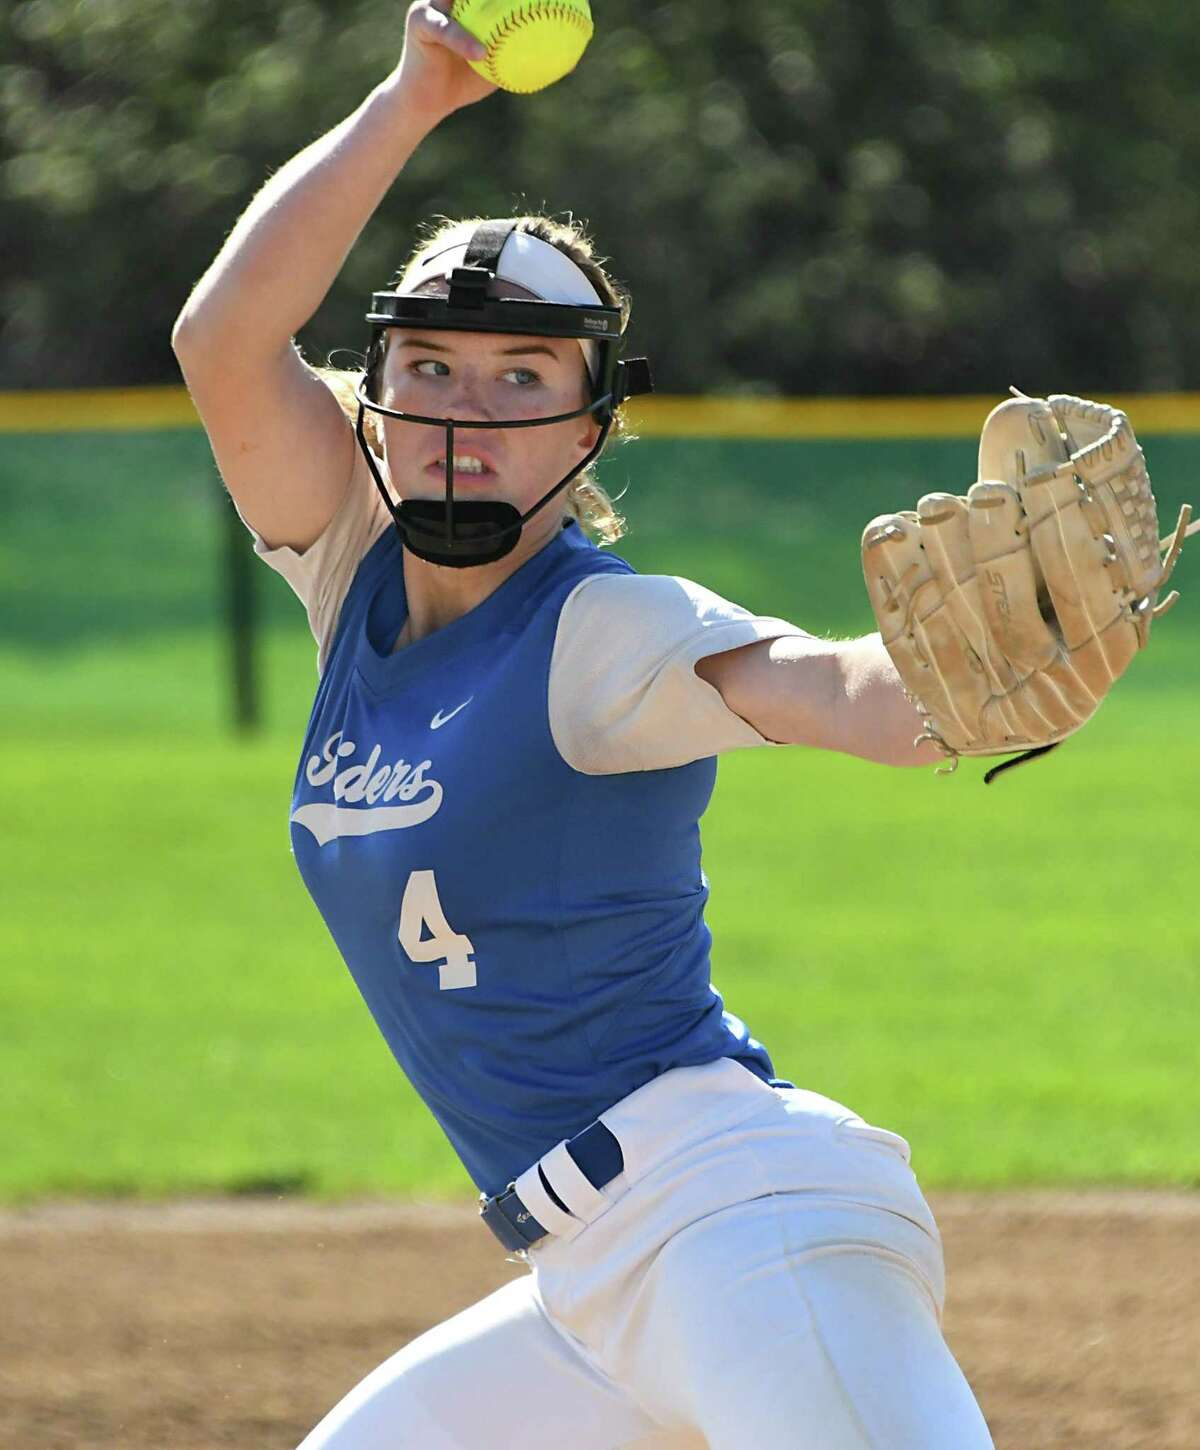 Ichabod Crane pitcher Calista Phippen throws the ball during a softball game against Cohoes on Monday May 7, 2018 in Cohoes, N.Y. (Lori Van Buren/Times Union)